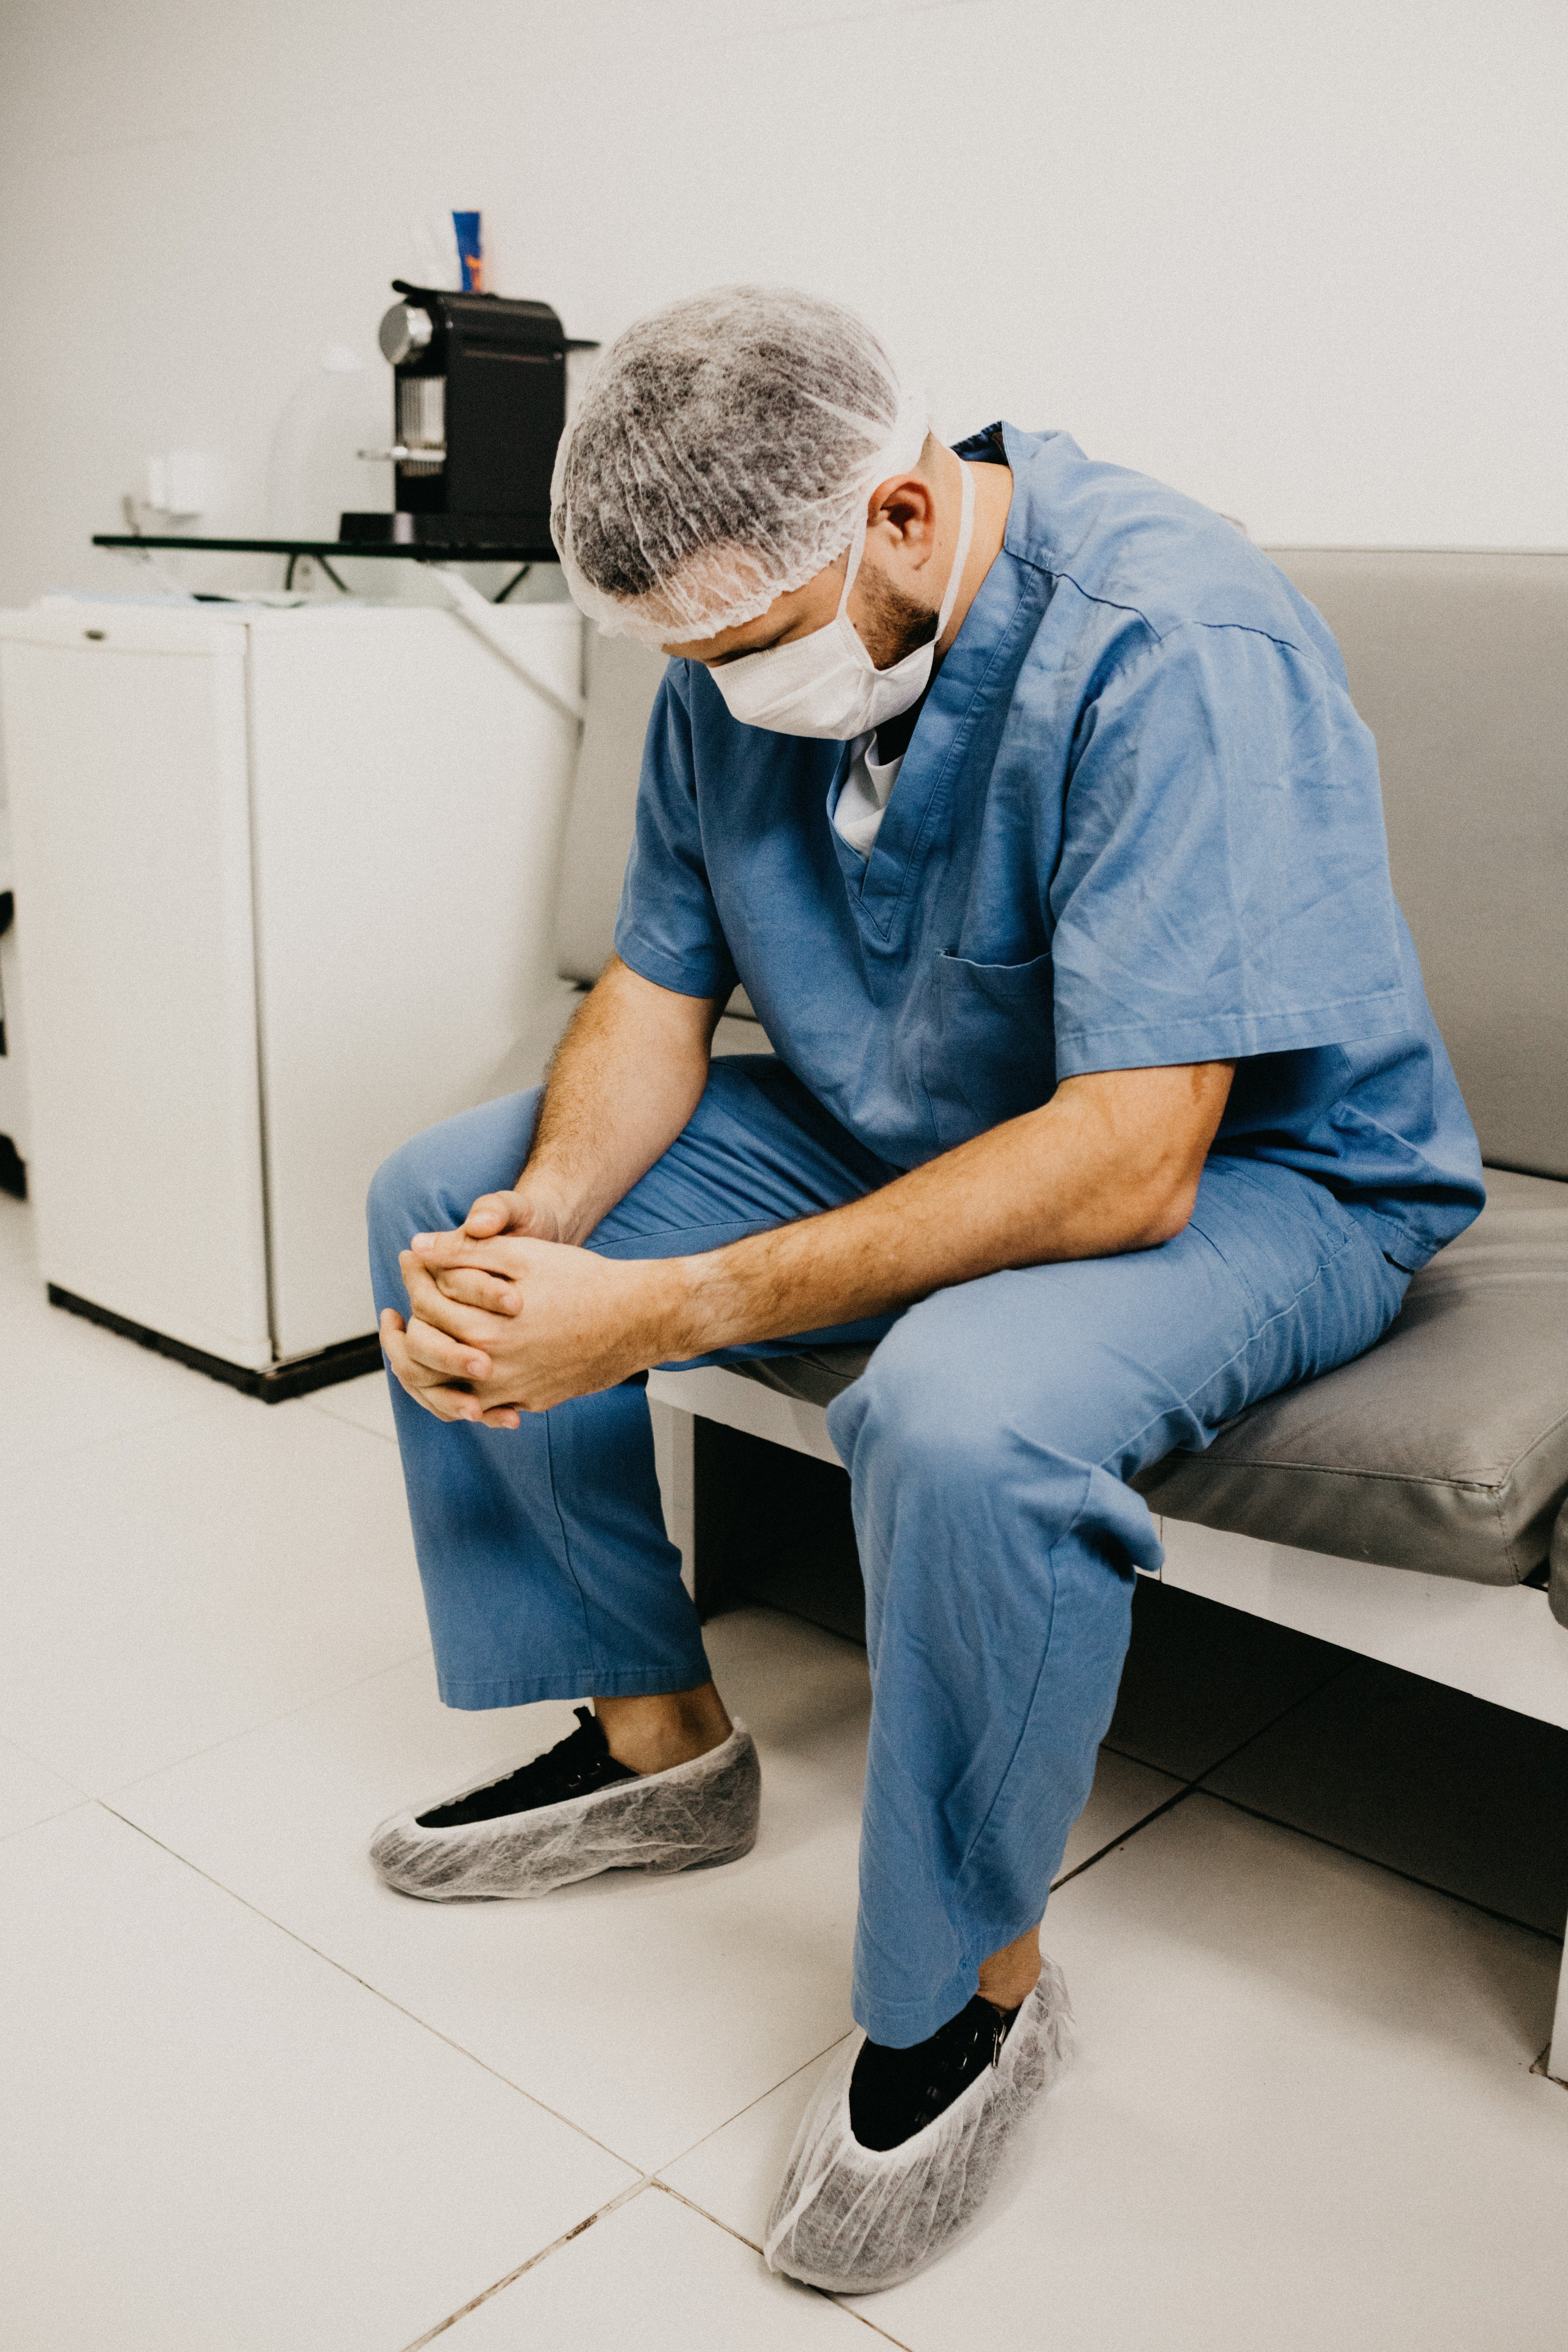 A medical professional sitting on a bench in their scrubs. | Source: Pexels